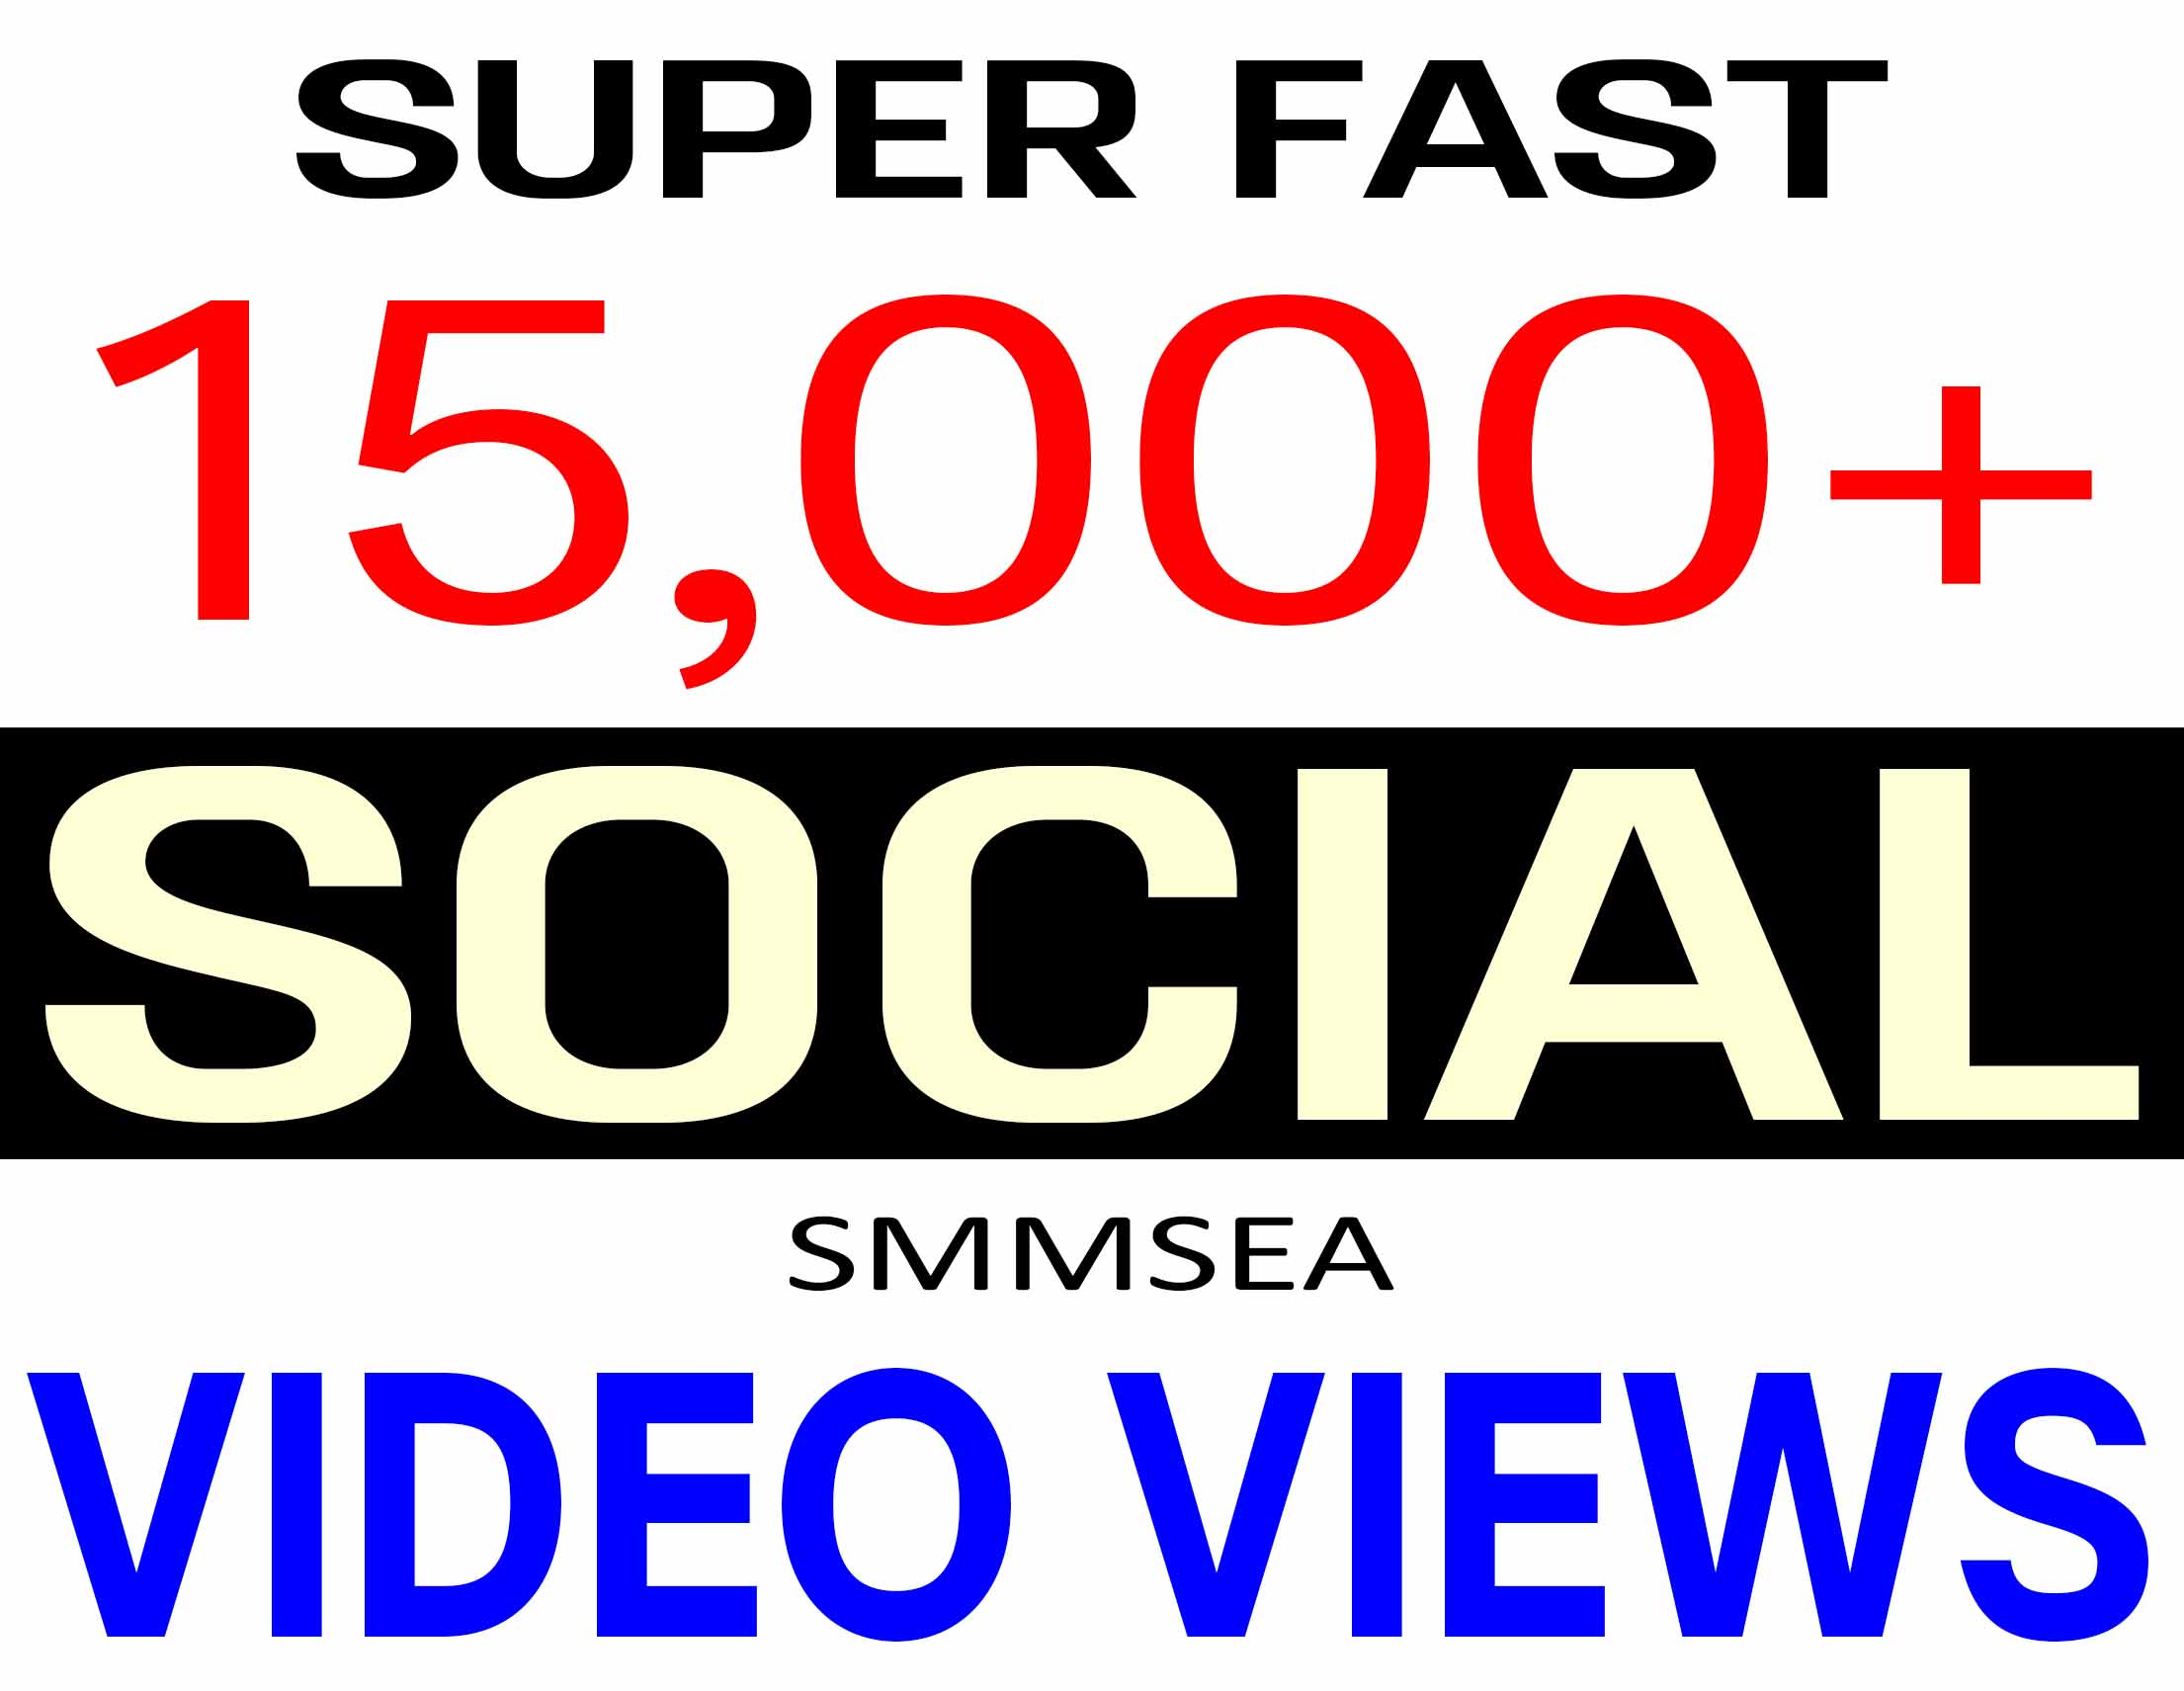 ADD 15,000+ SOCIAL VIDEO VIEWS REAL ORGANIC PROMOTION,  HIGH QUALITY WITH NON DROP GUARANTEED